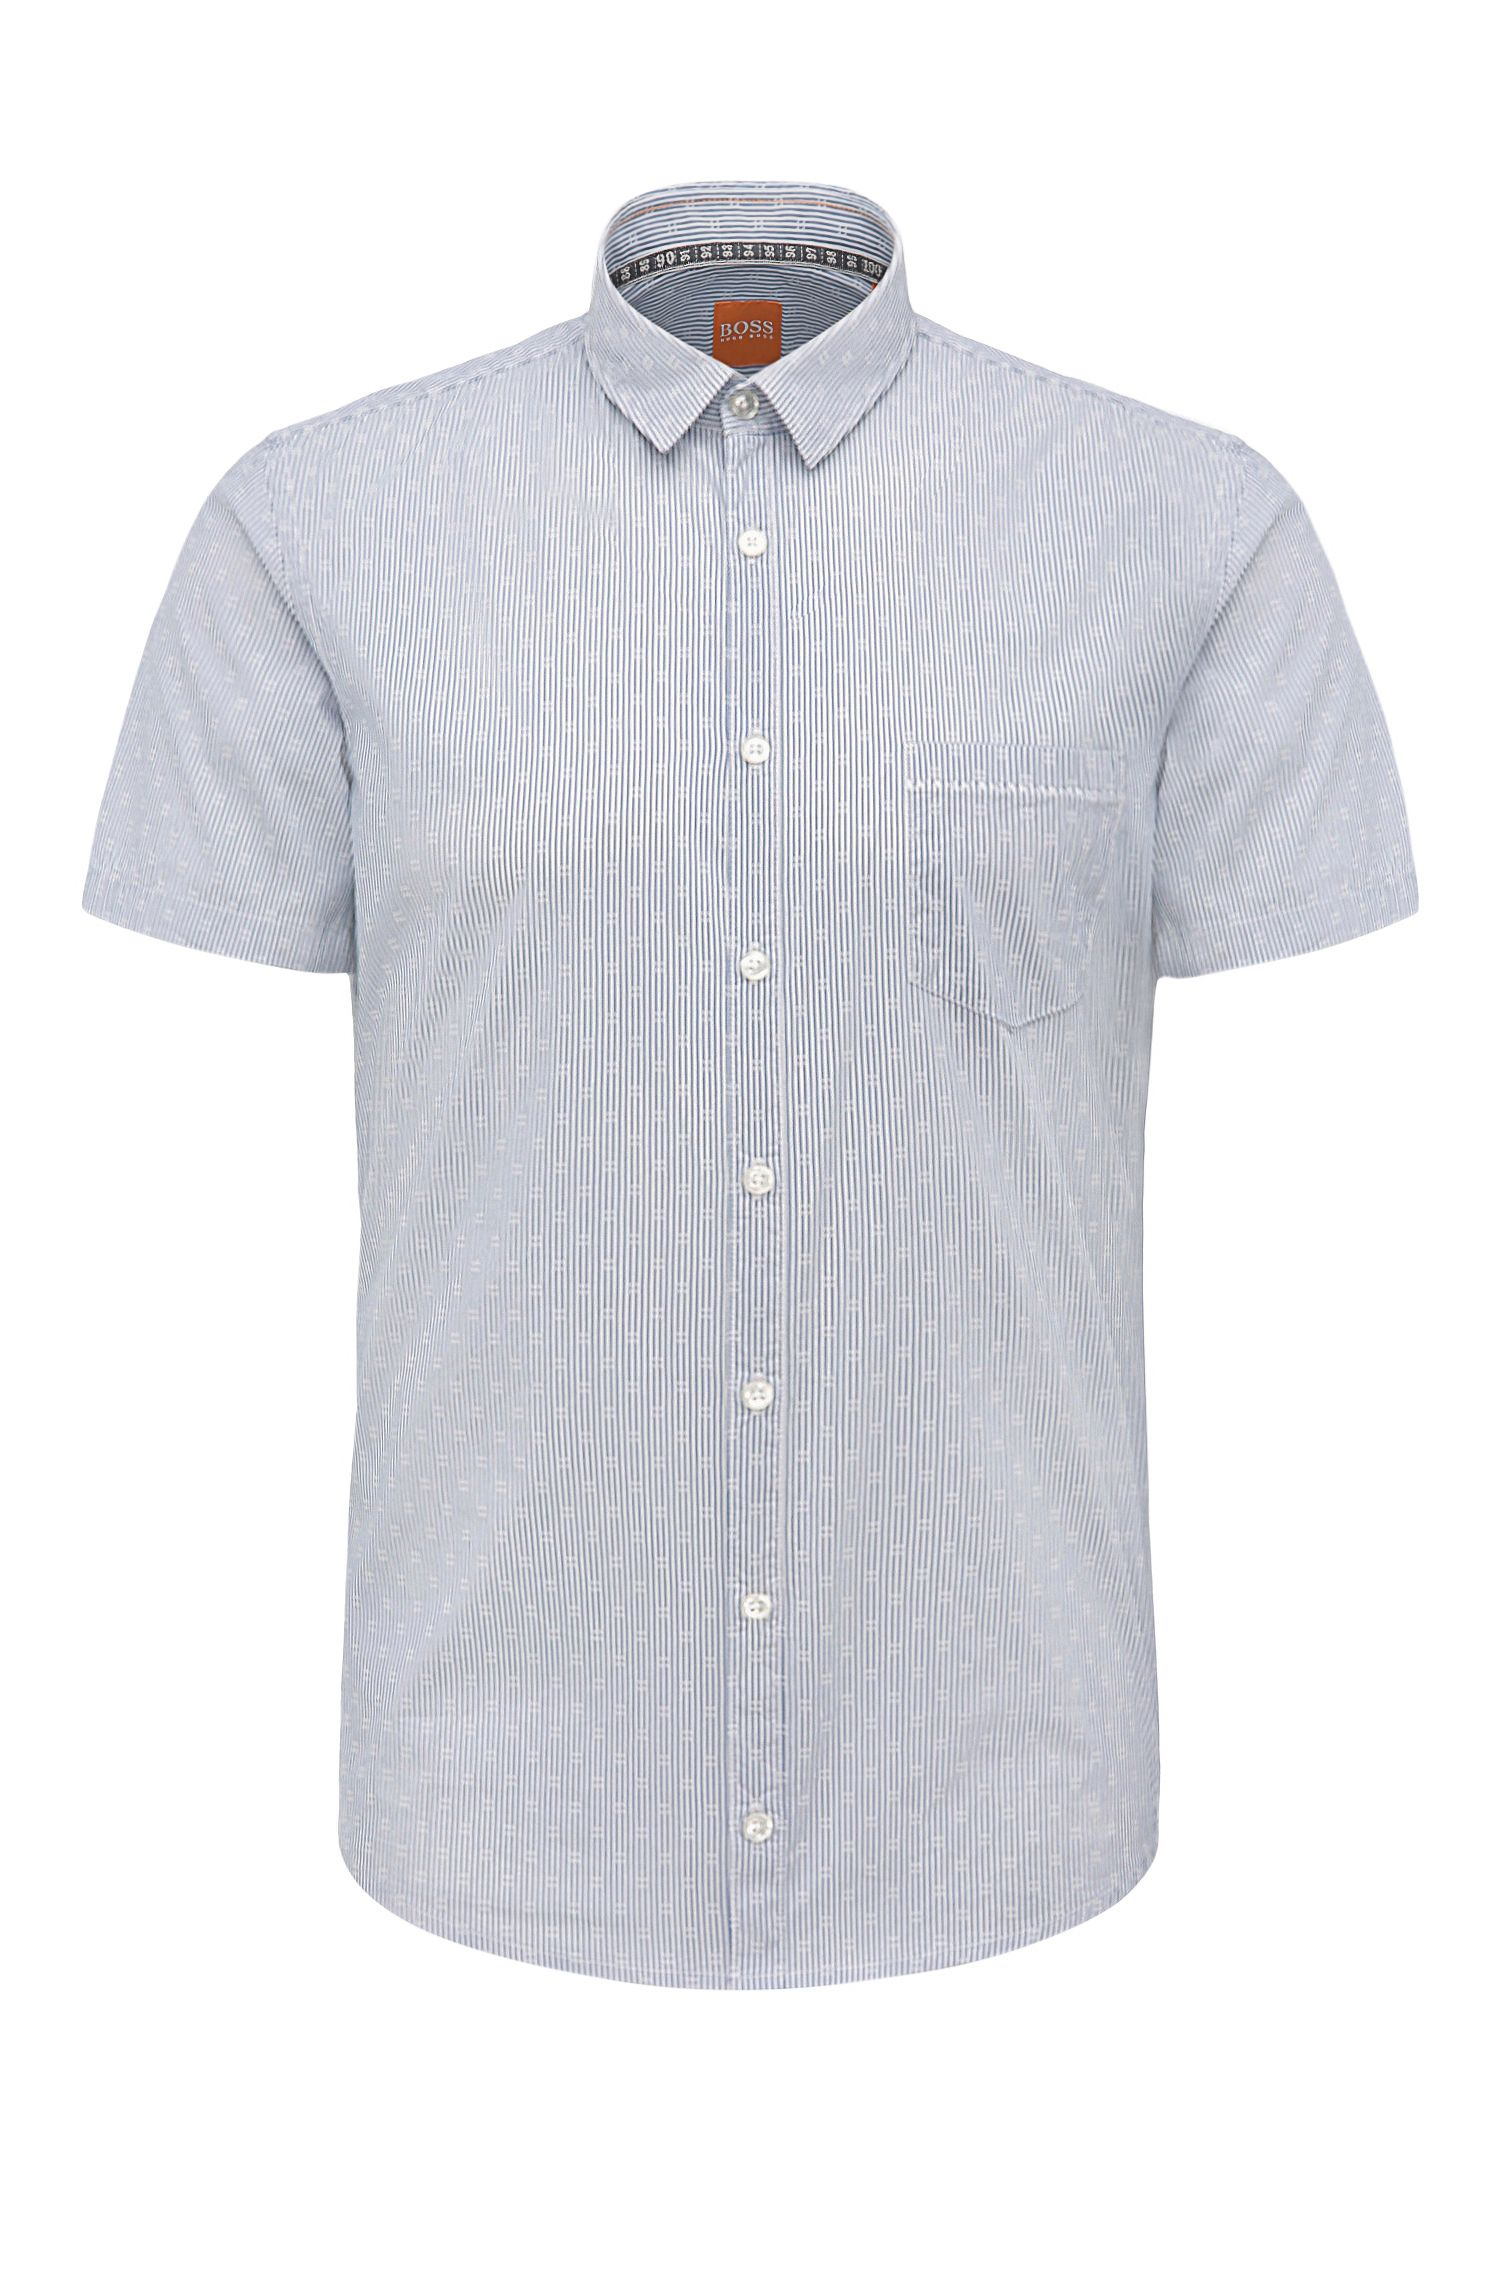 Extra slim-fit short-sleeved shirt in a striped stretch cotton blend: 'Eglam-short'